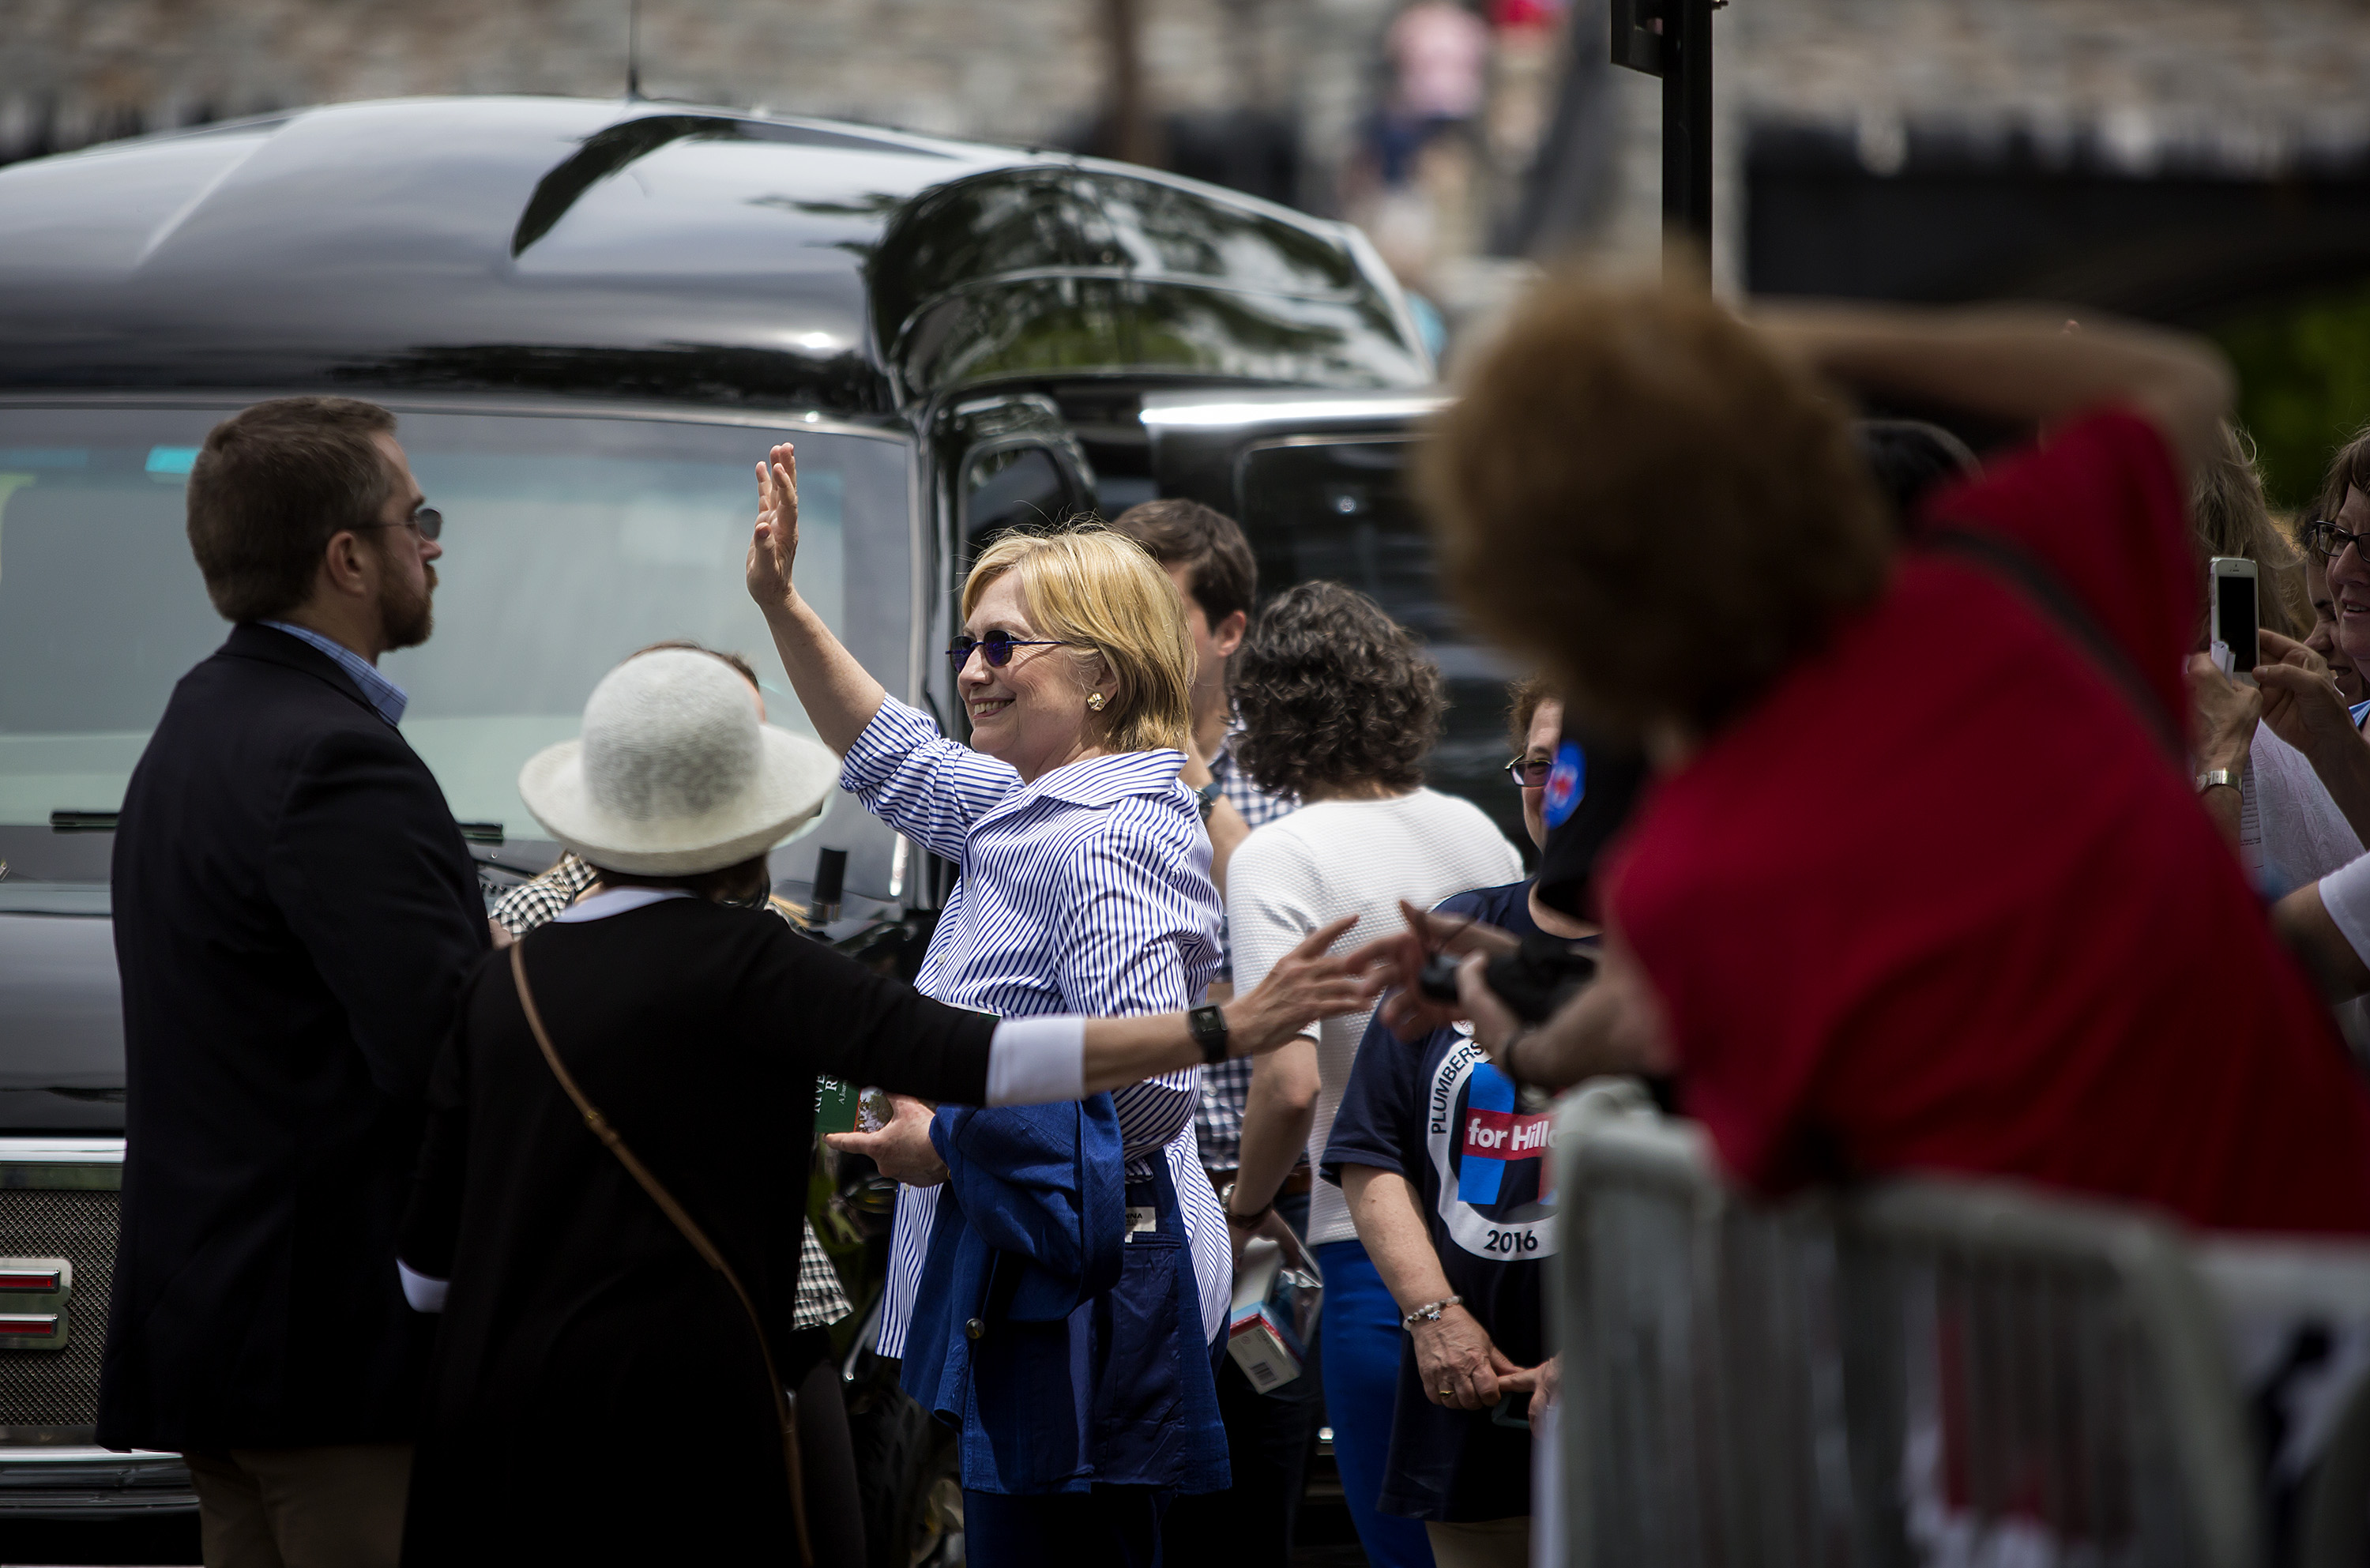 Democratic presidential candidate former Secretary of State Hillary Clinton departs after walking in the Memorial Day parade May 30, 2016 in Chappaqua, New York.